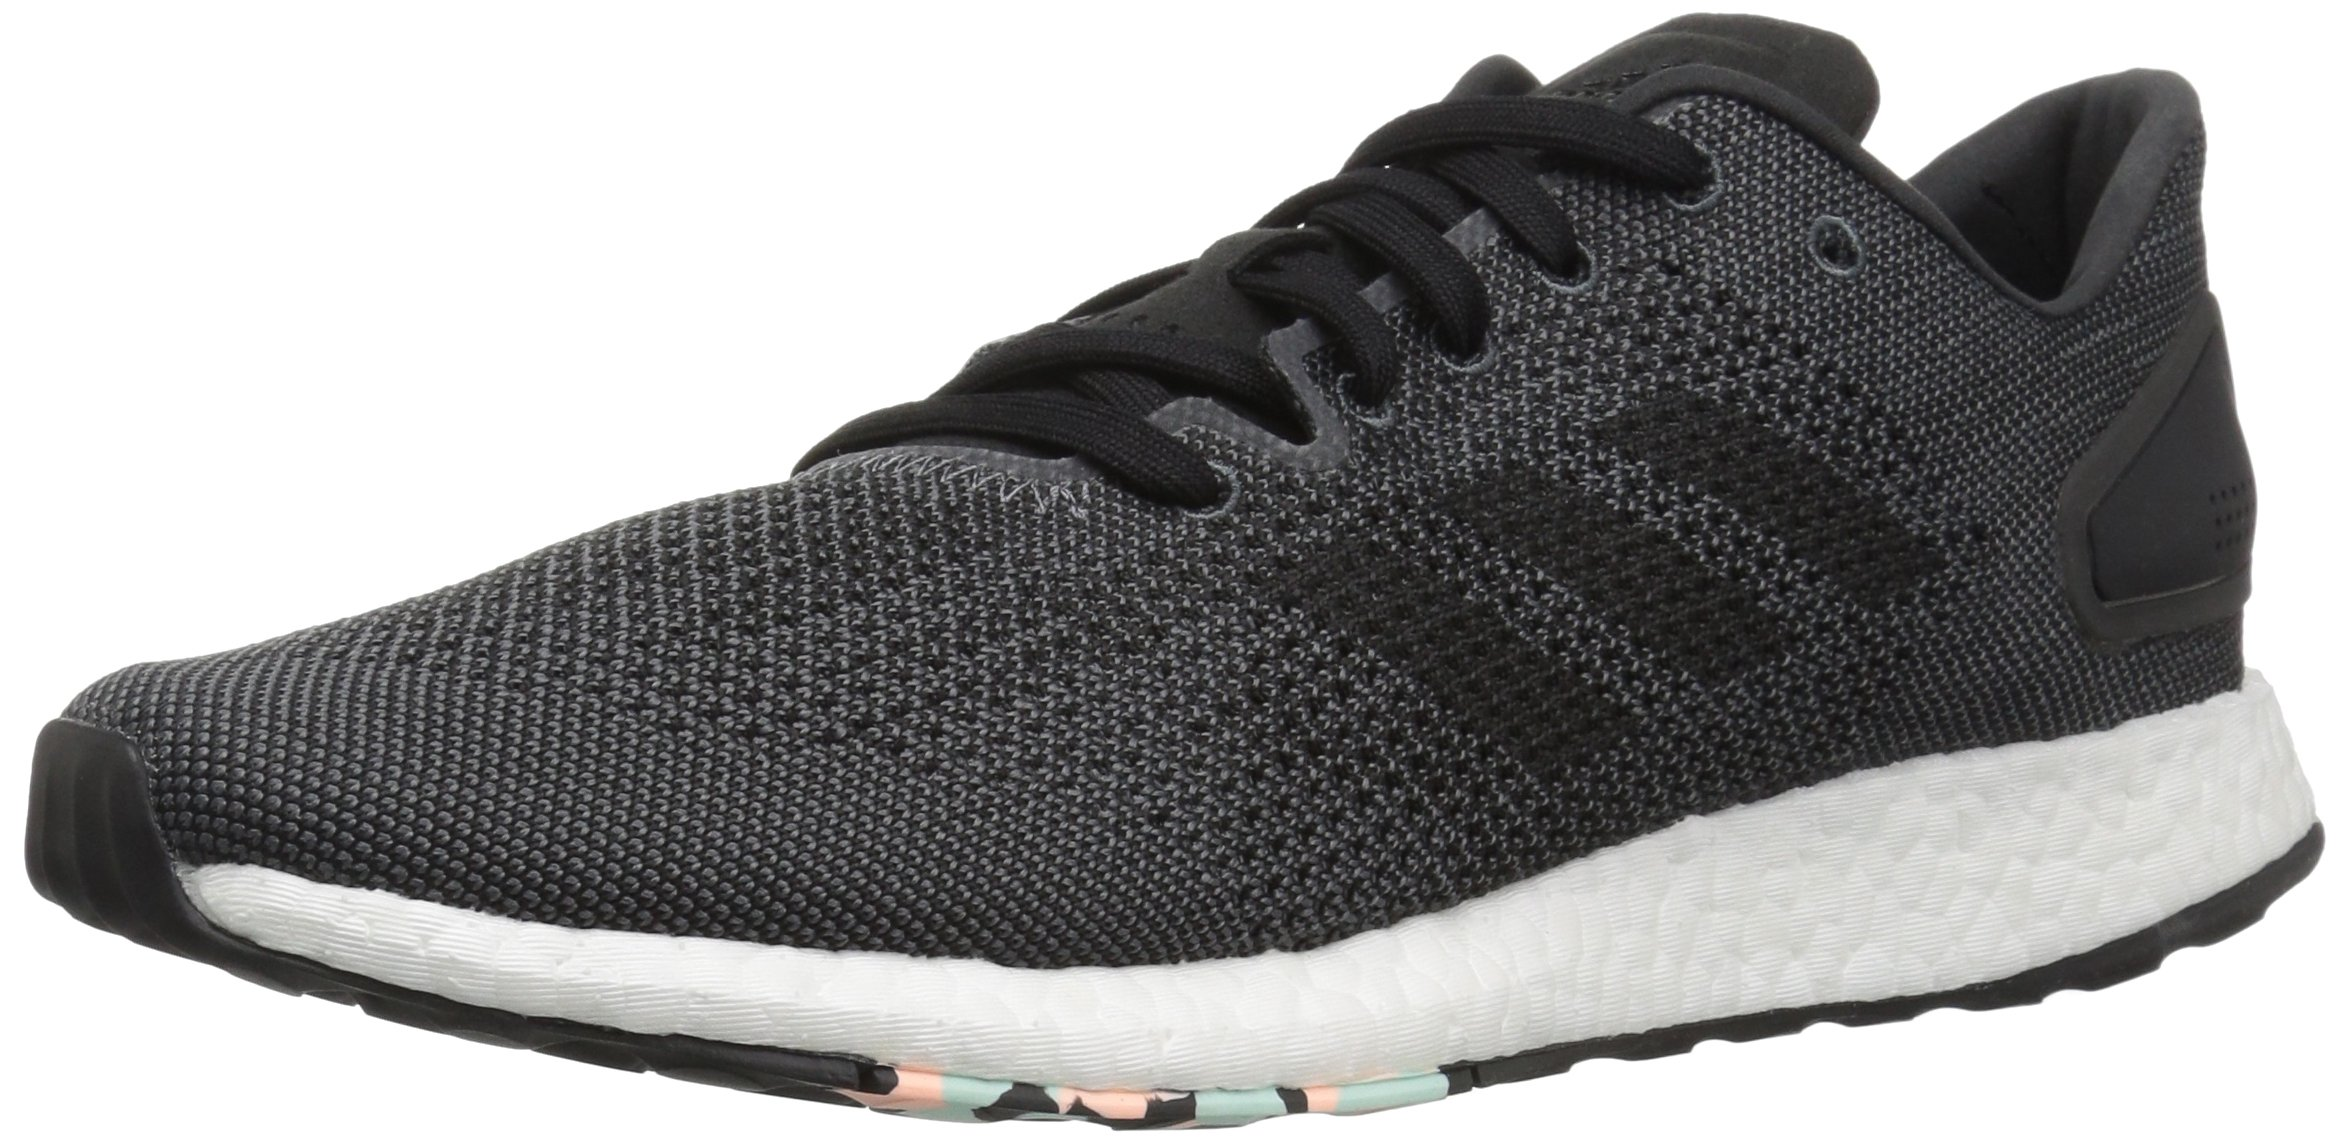 adidas Women's Pureboost DPR Running Shoes, Black/Grey, 6.5 M US by adidas